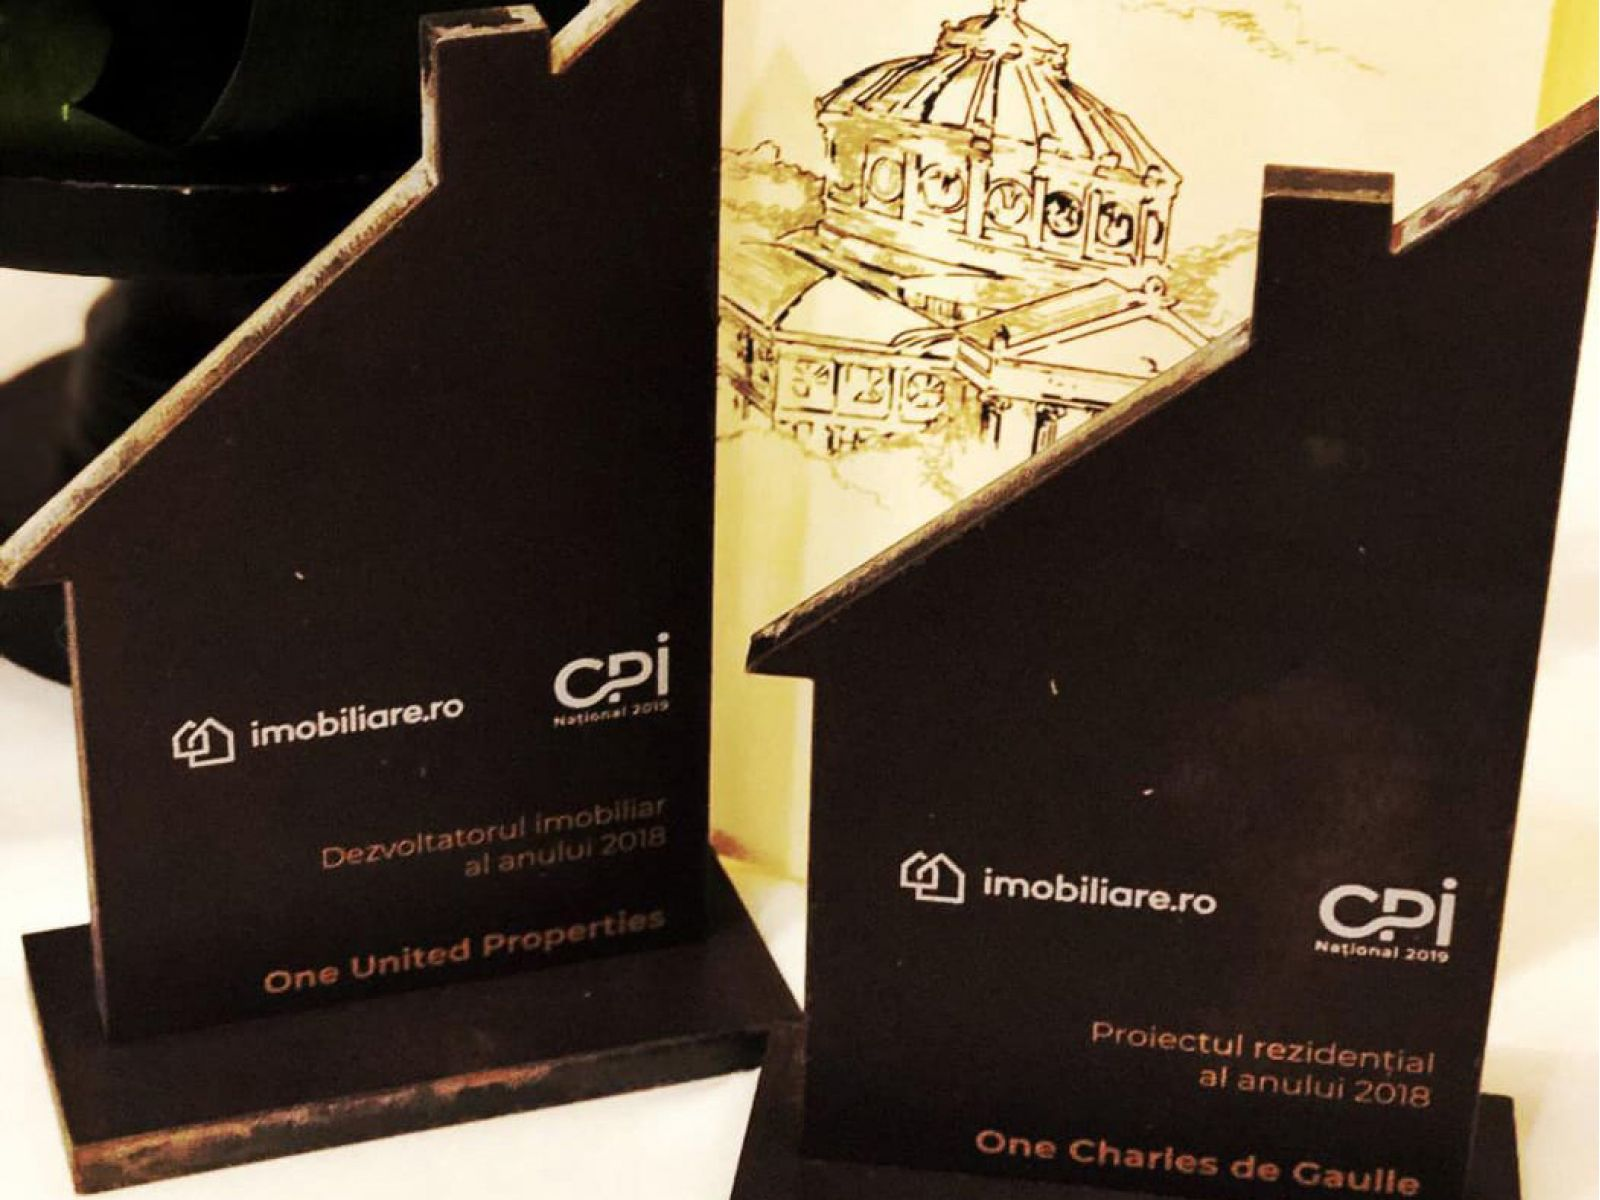 One United Properties, recipient of Developer of the Year & Residential Project of the Year Awards at CPI Național 2019